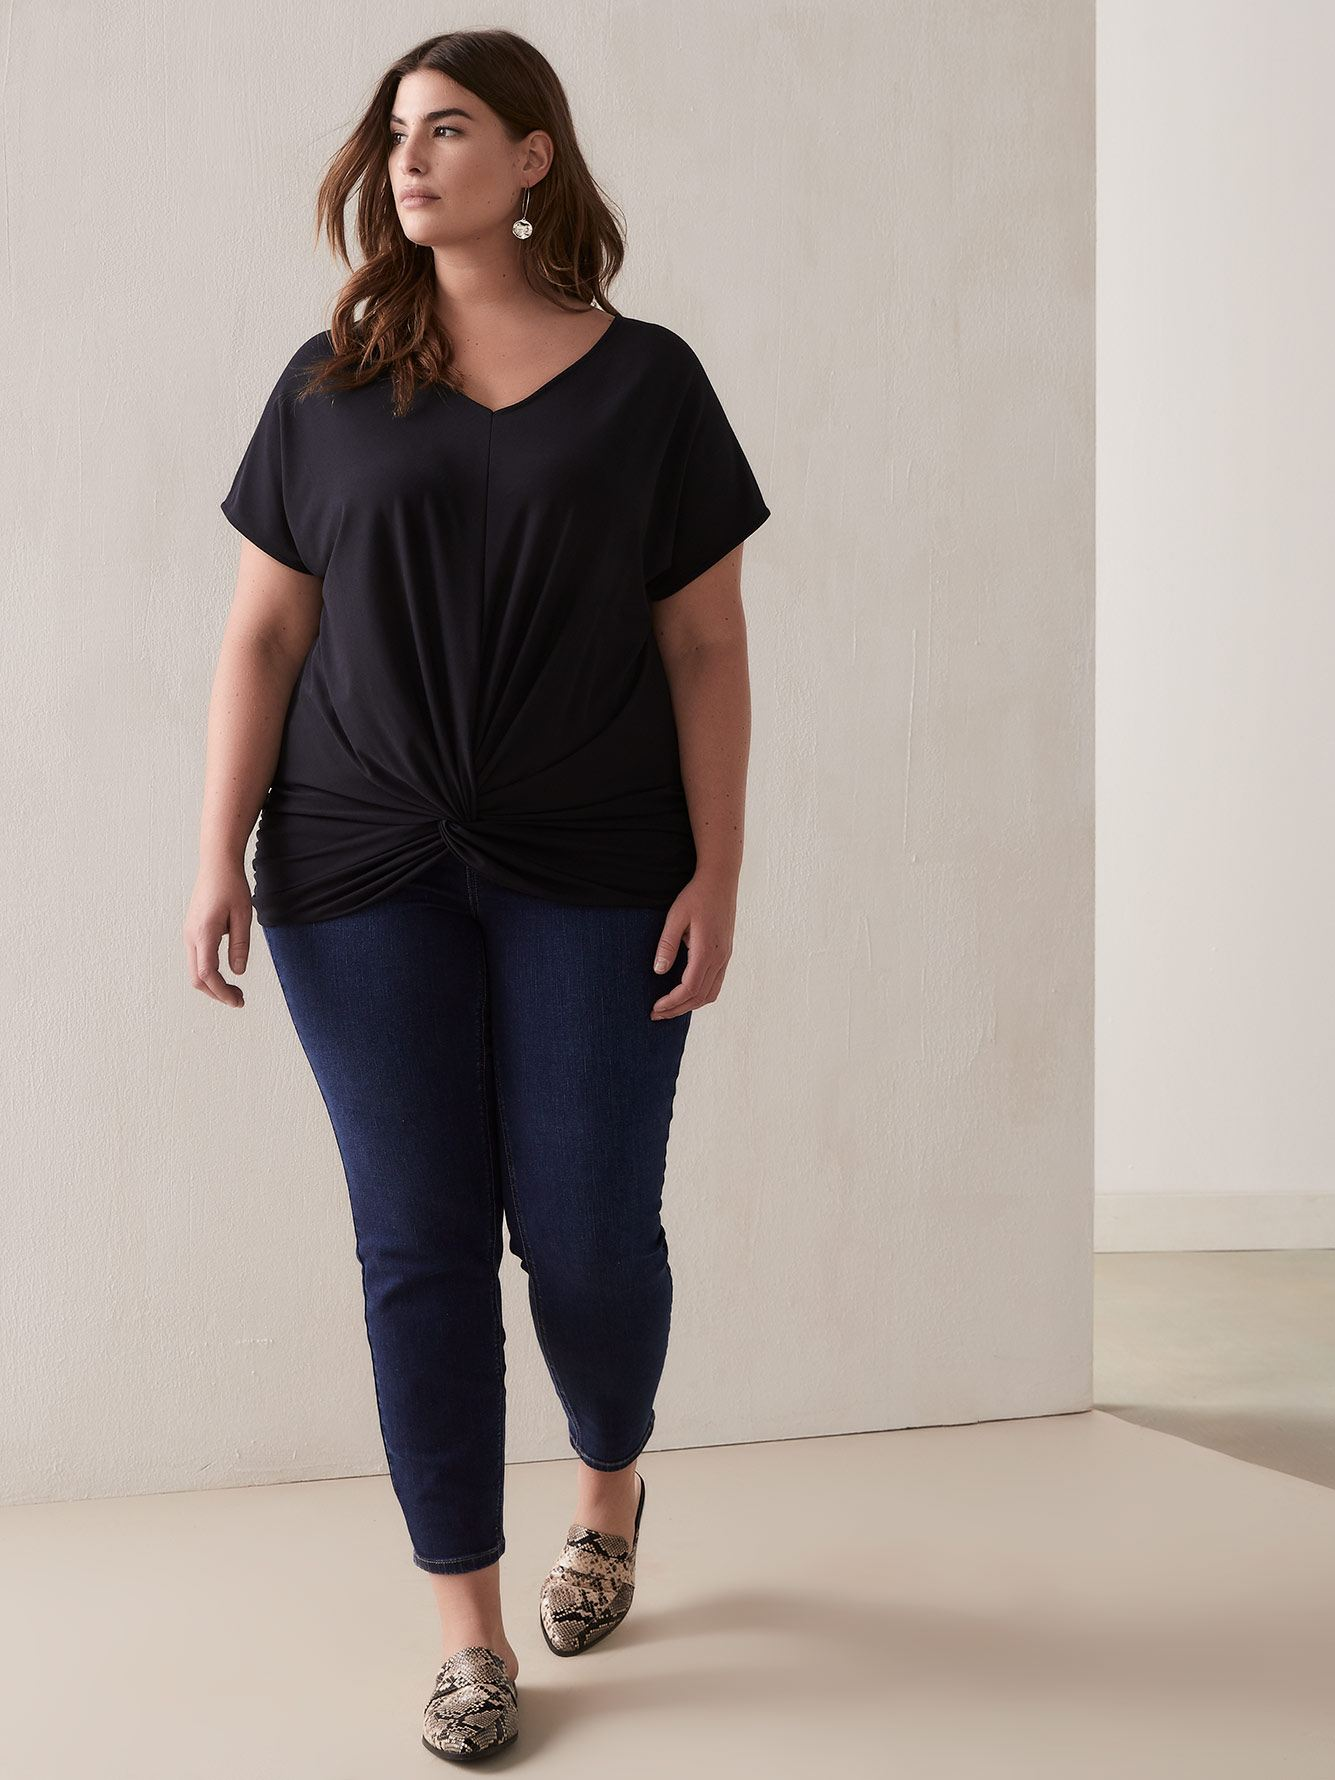 Short-Sleeve Top with Twisted Front